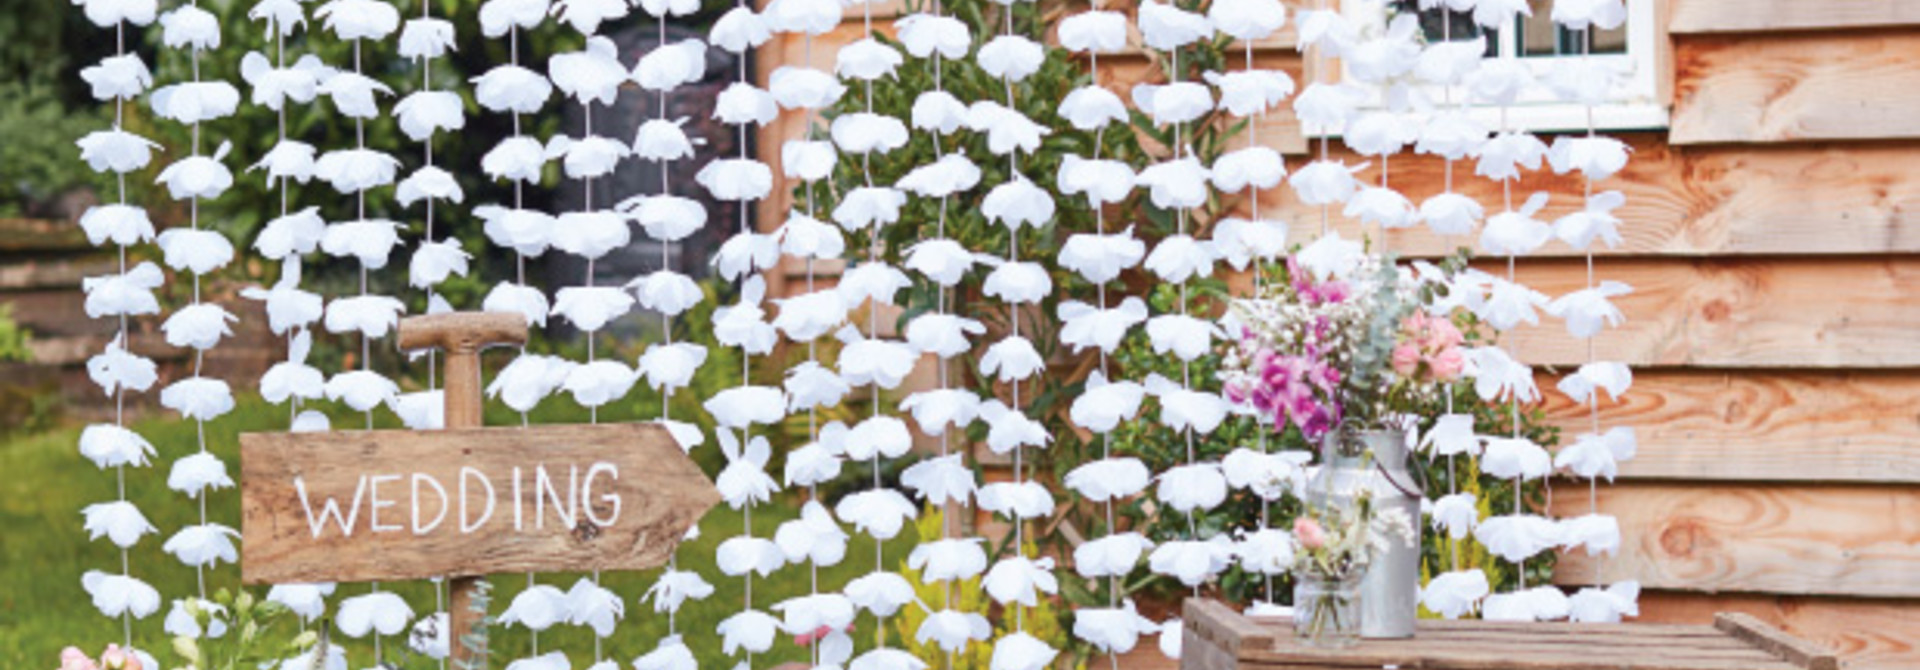 Backdrop bloemen wit rustic country - Ginger Ray